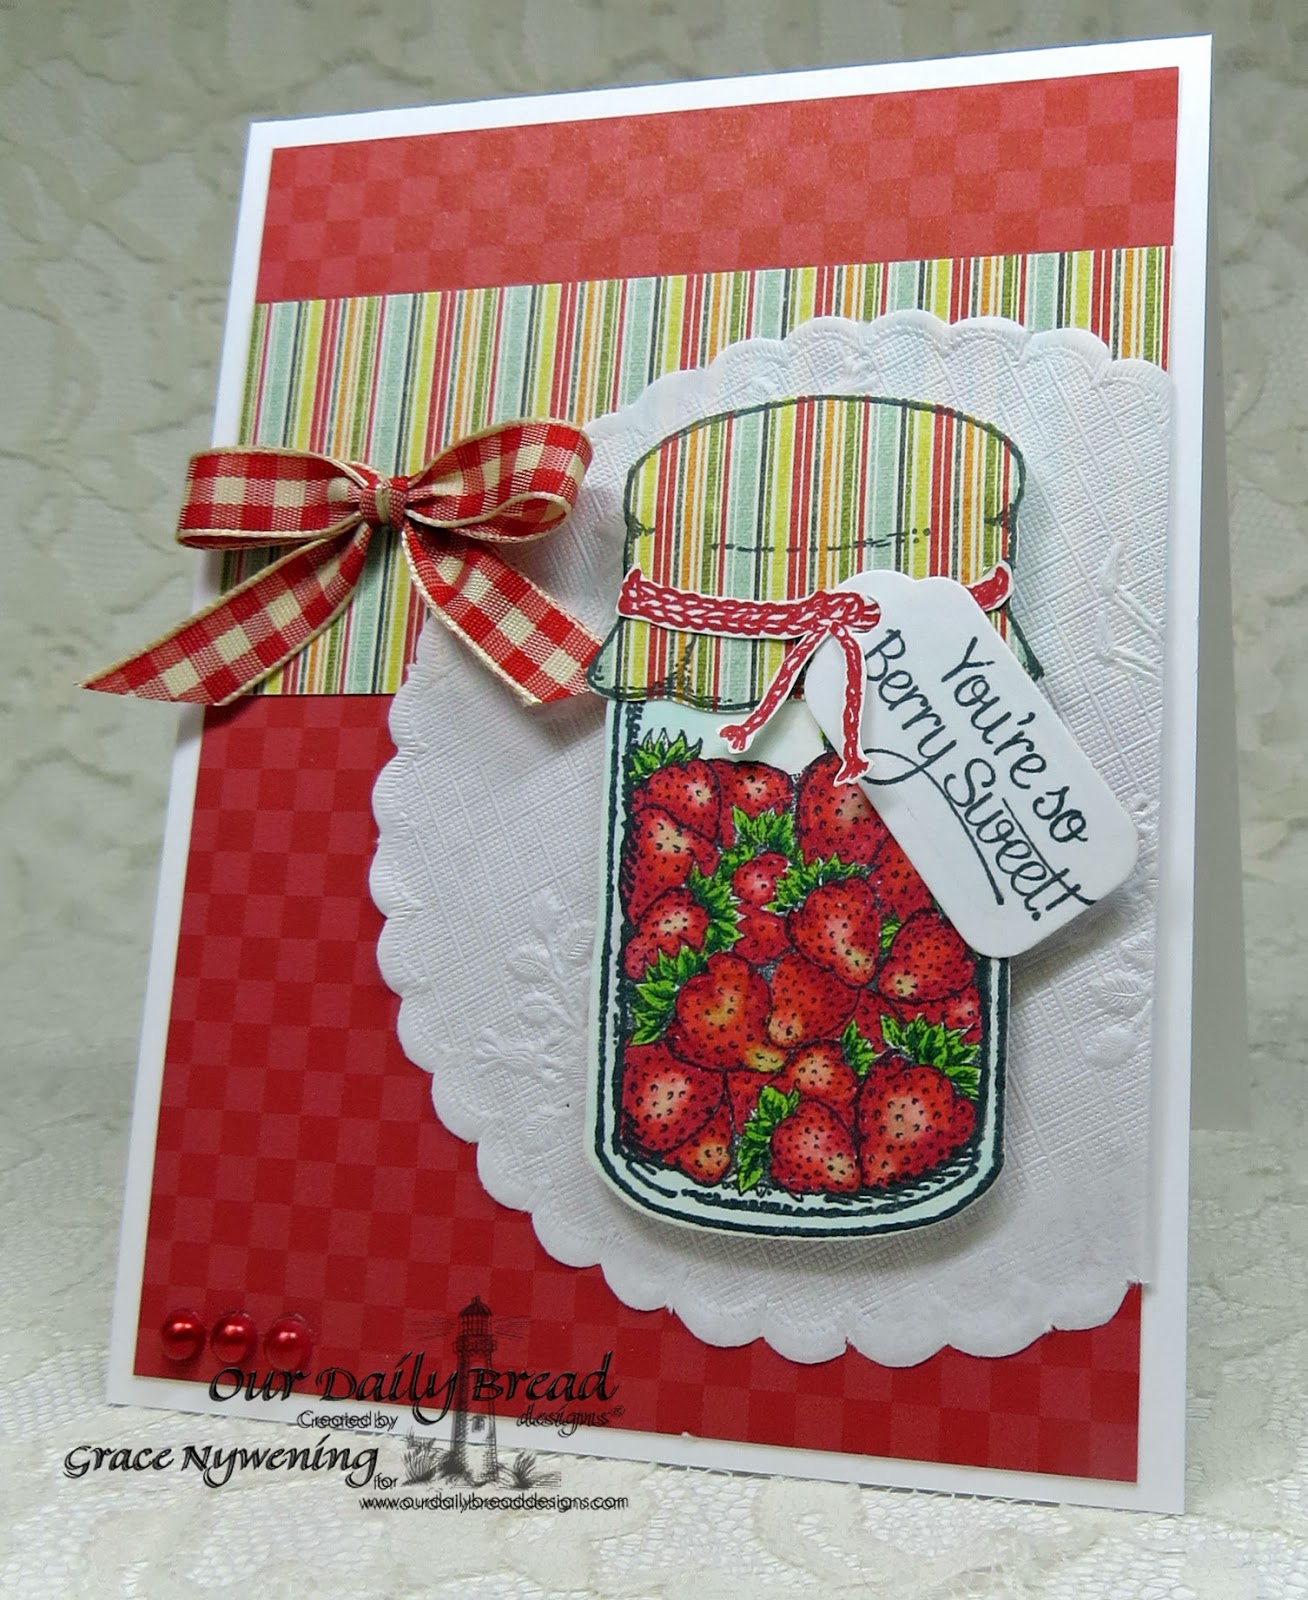 ODBD stamps: Canning Jars, Canning Jar Fillers, Canning Jar Fillers 2, Strawberries, designed by Grace Nywening